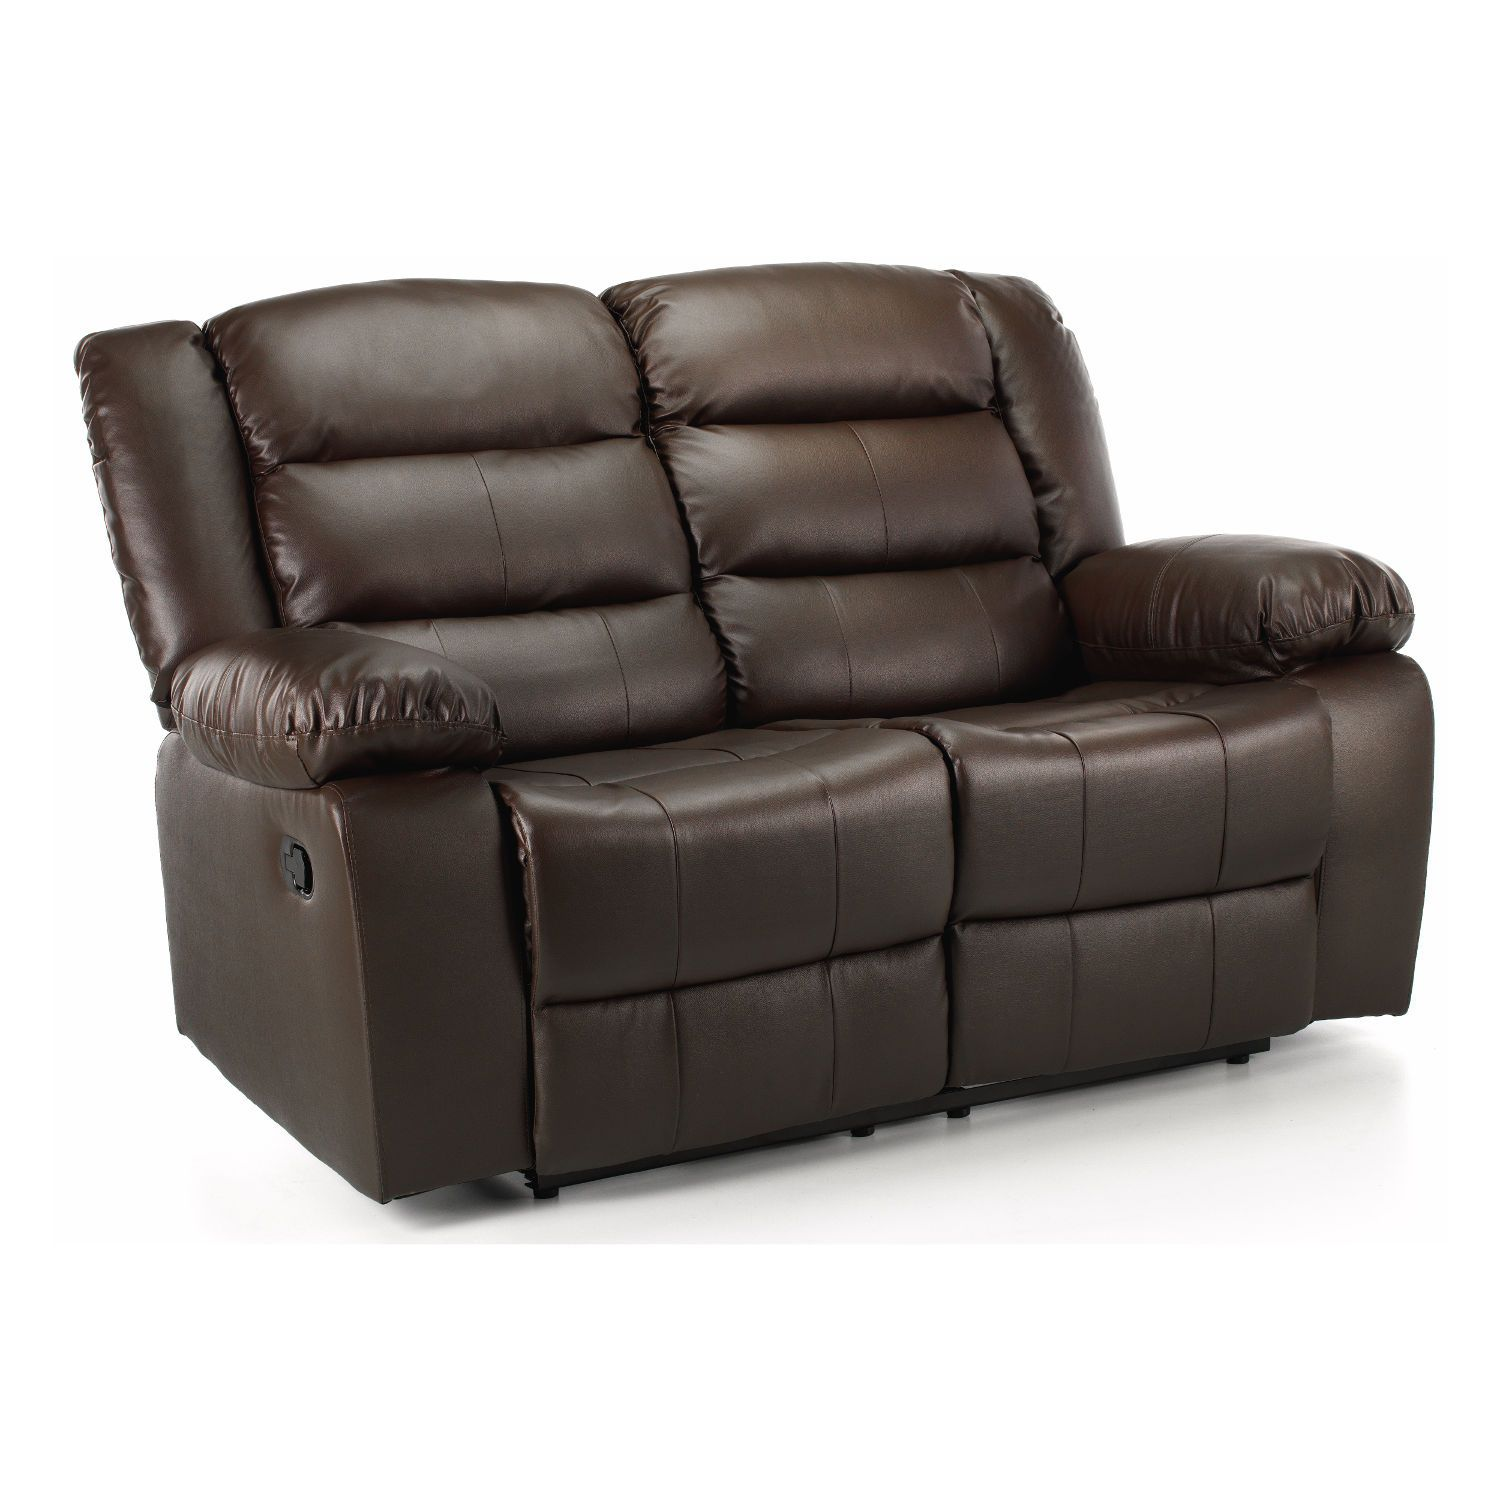 Whitfield 2 Seater Leather Reclining Sofa – Next Day Delivery ...